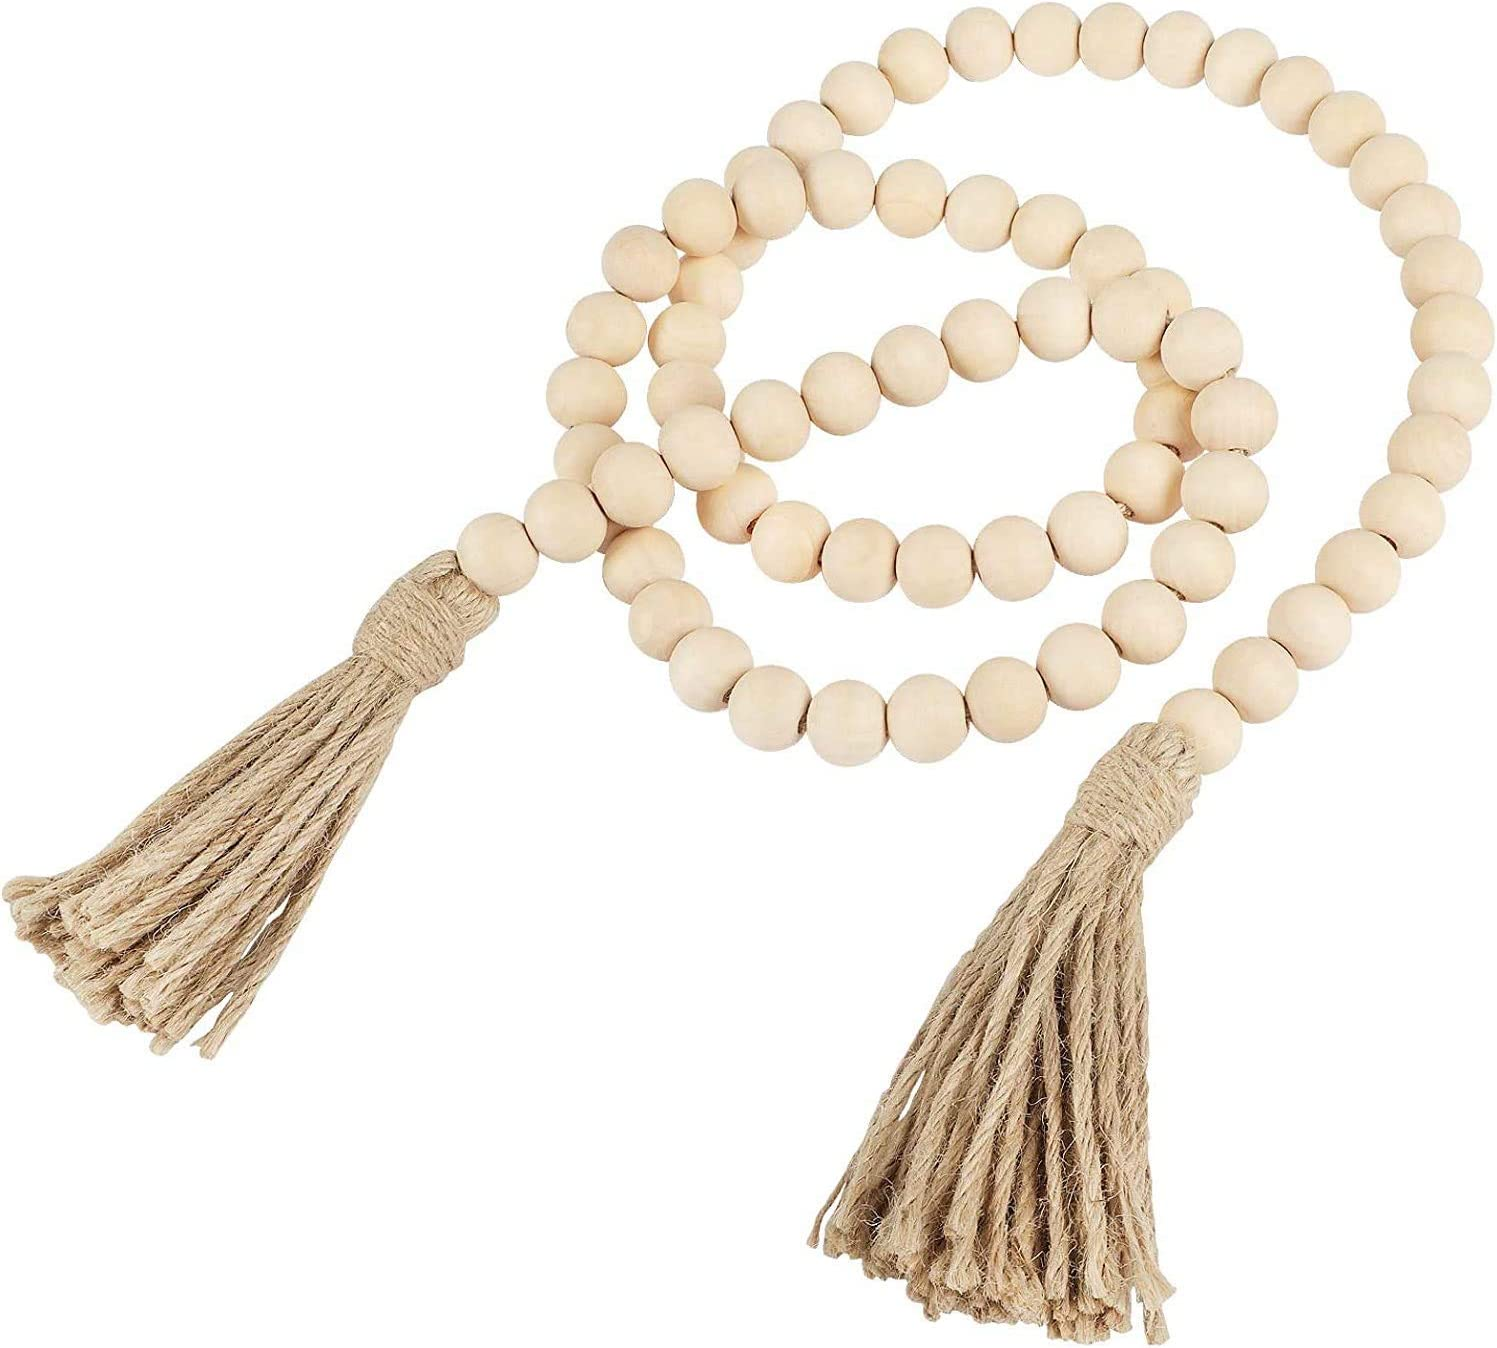 LIMGLIM 66inch Wood Bead Garland for Farmhouse Boho Decor with Tassels, Prayer Beads Rustic Country Wall Hanging Decor, 20mm